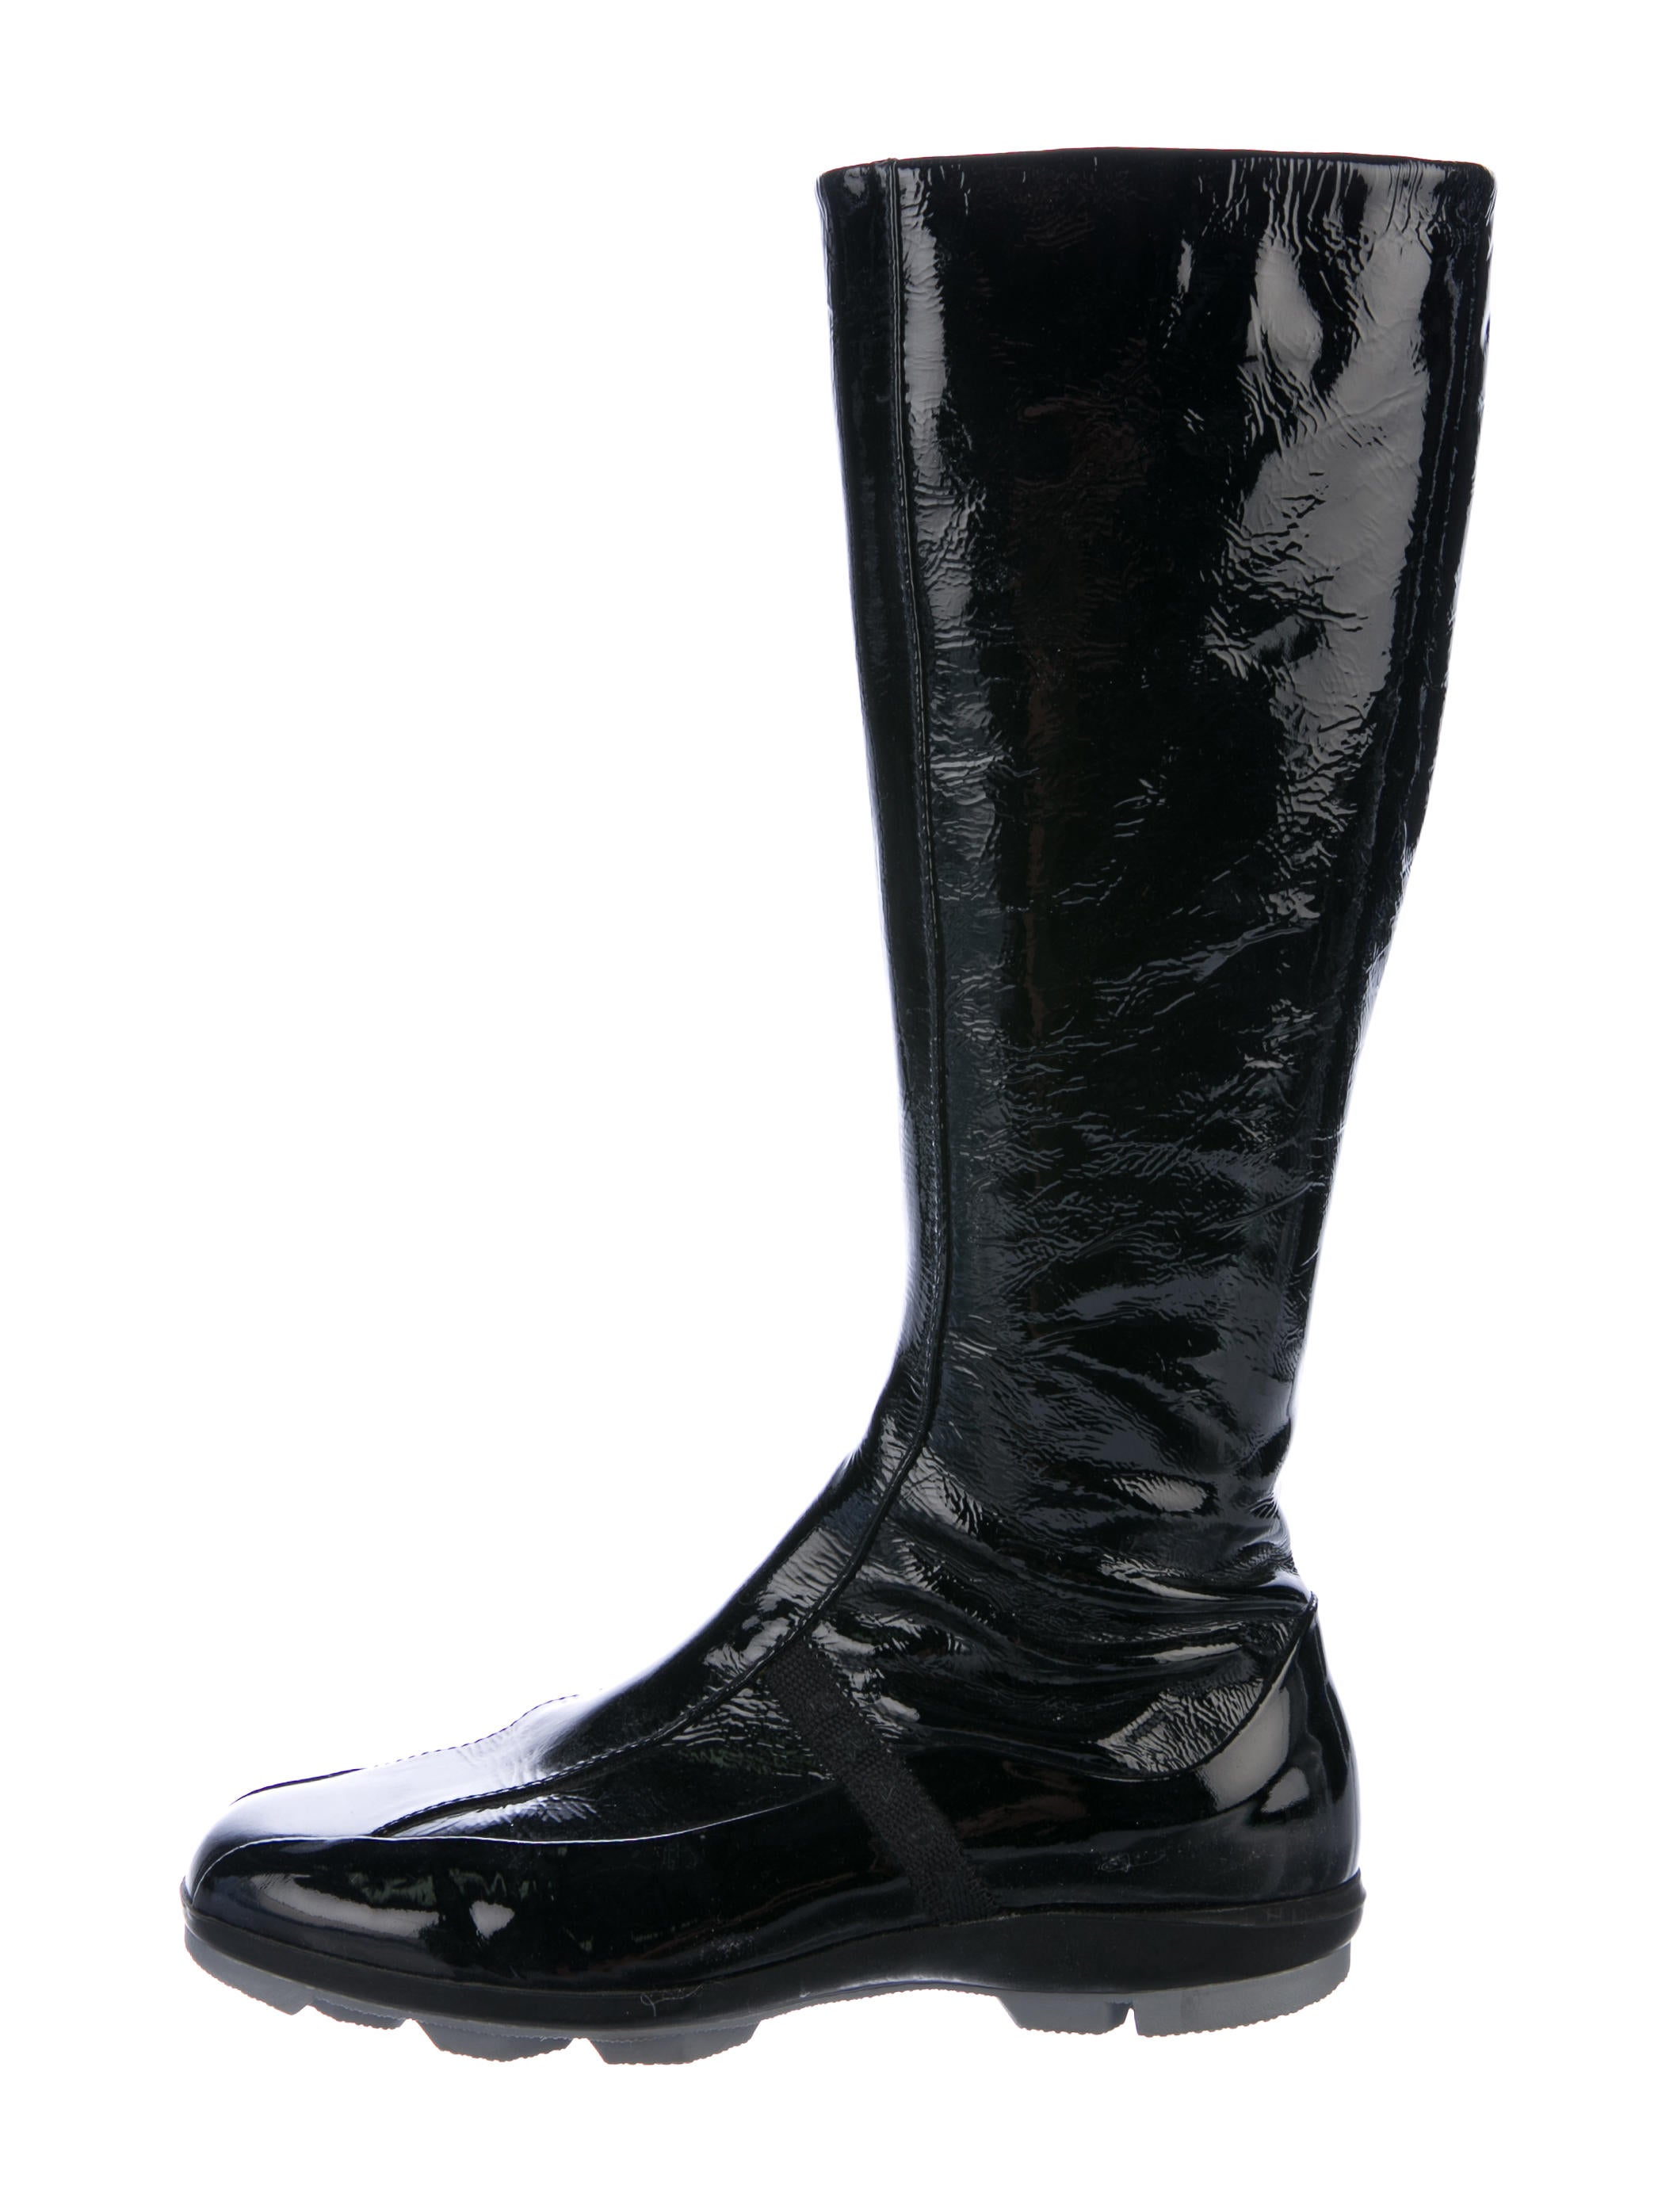 prada sport patent leather knee high boots shoes